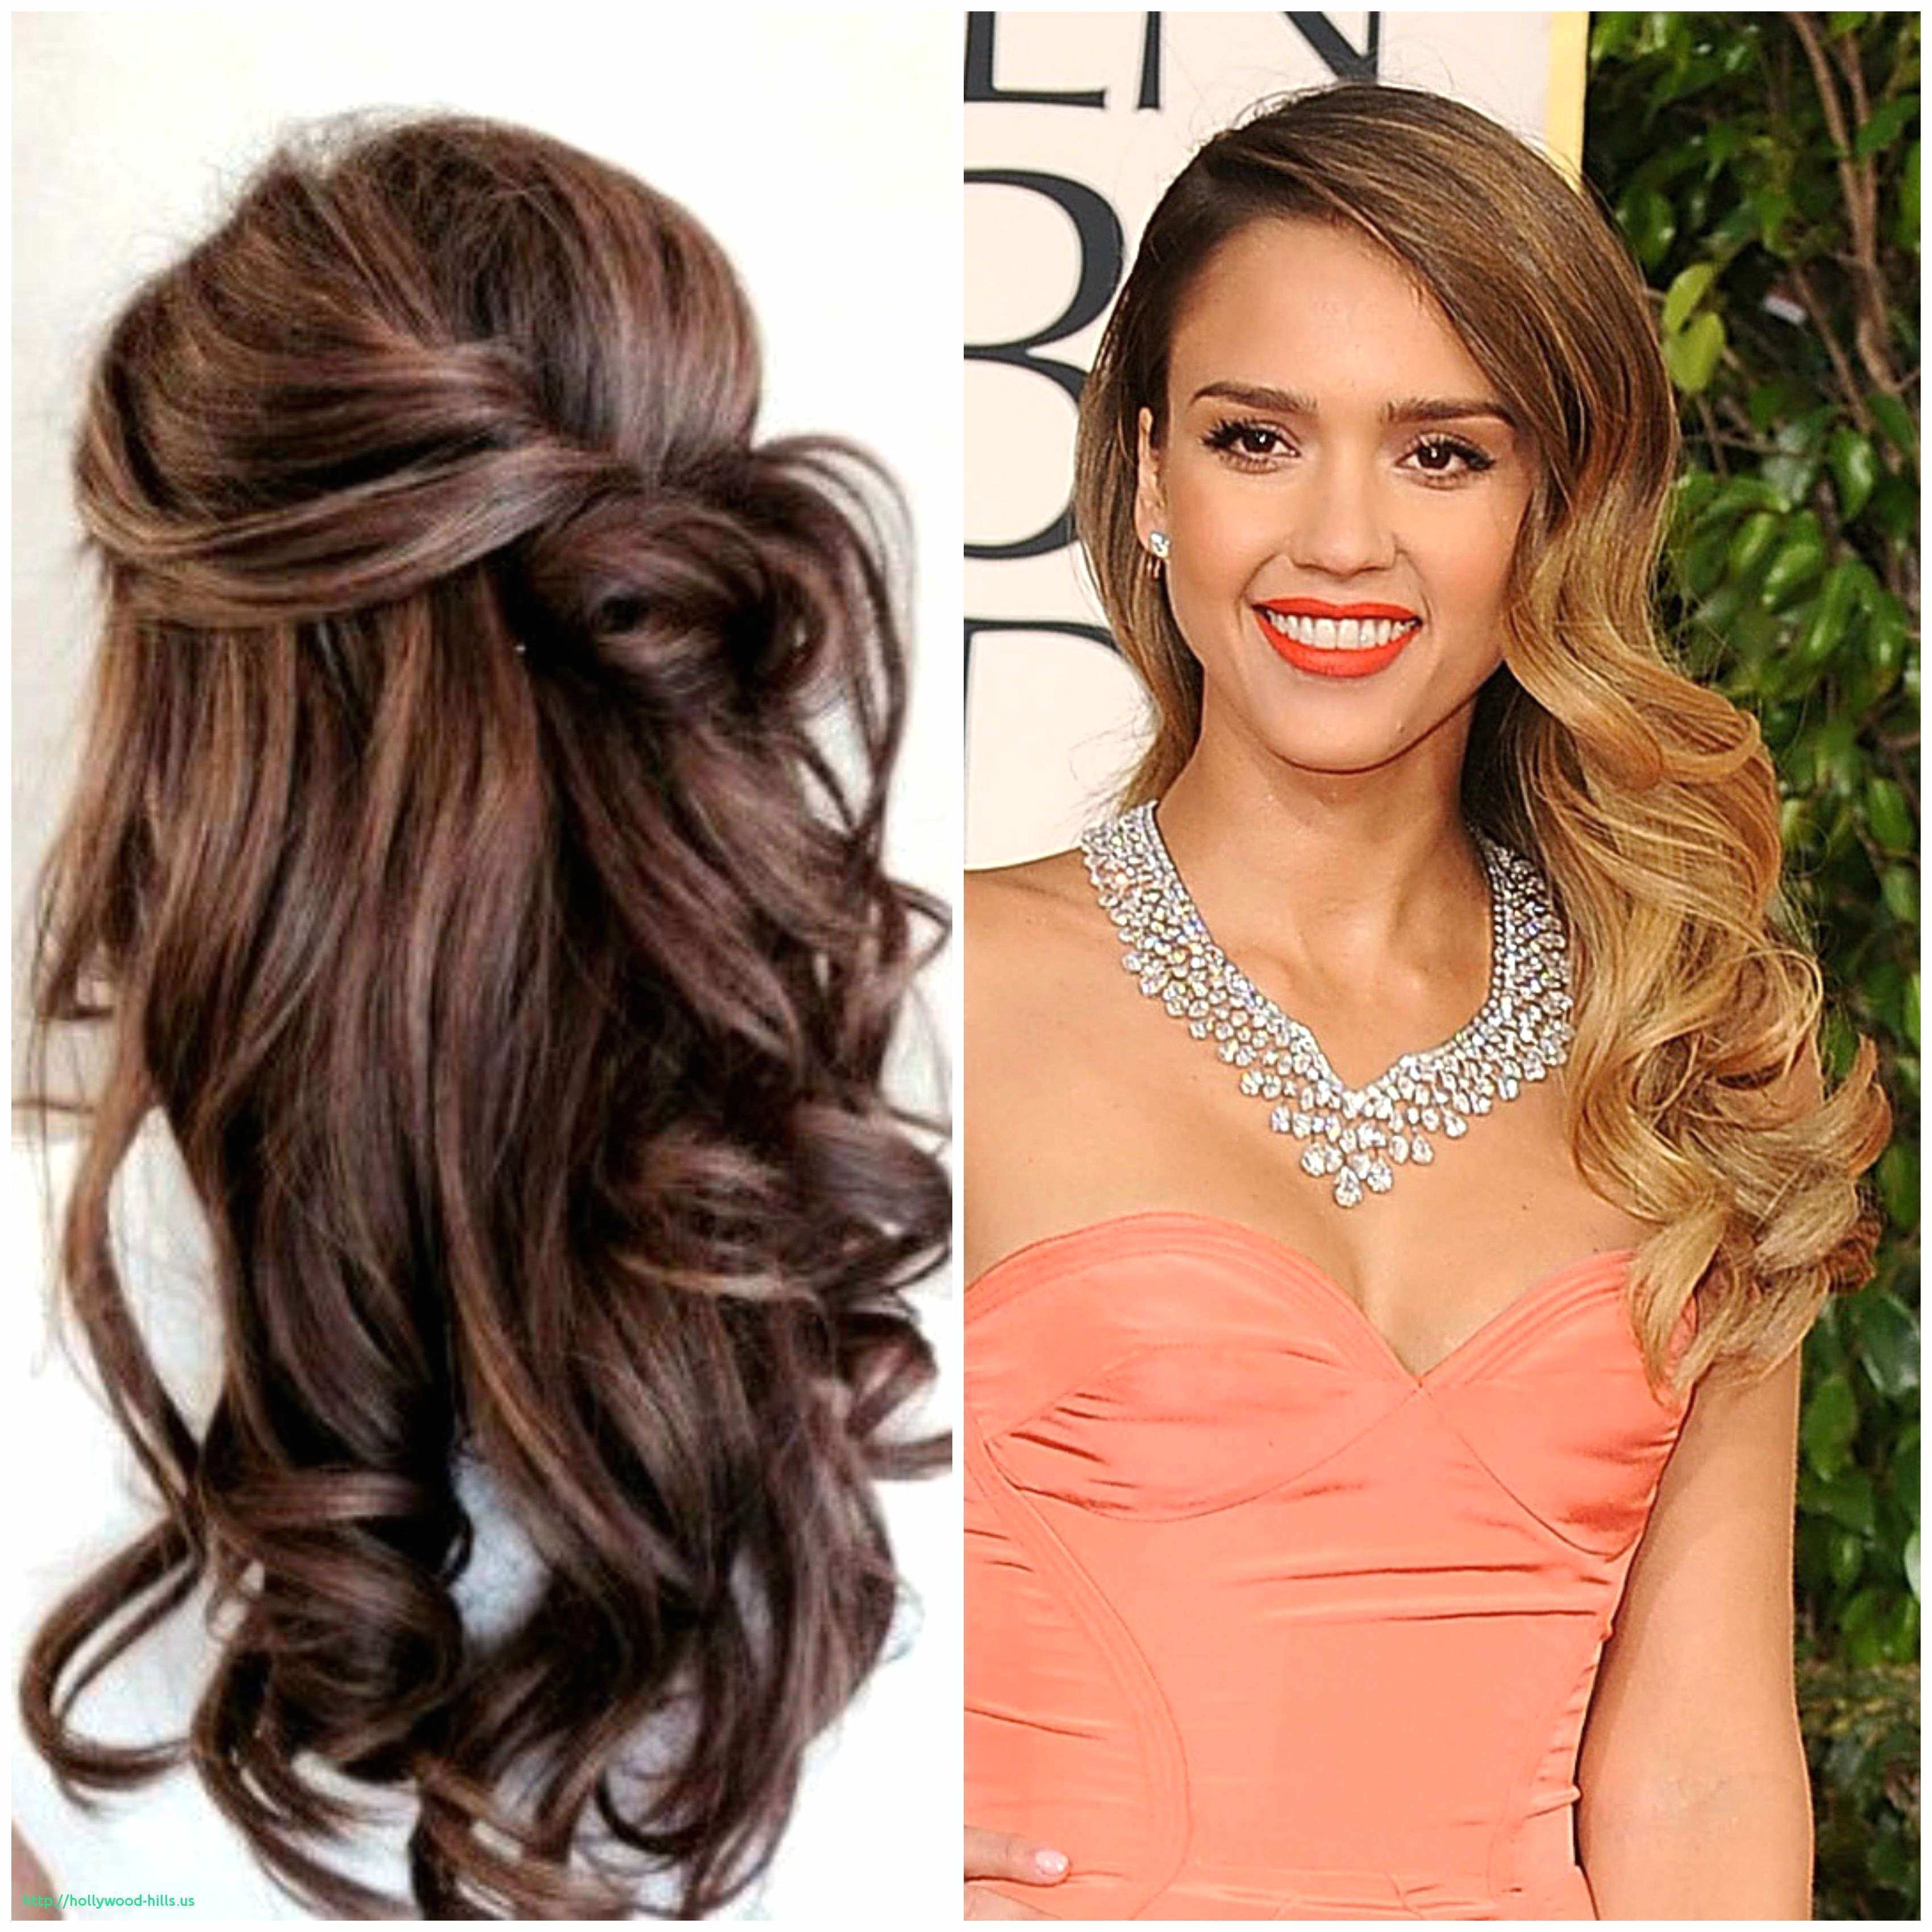 Hairstyles for Girls Curly Hair New Curly Hairstyle Unique Very Curly Hairstyles Fresh Curly Hair 0d